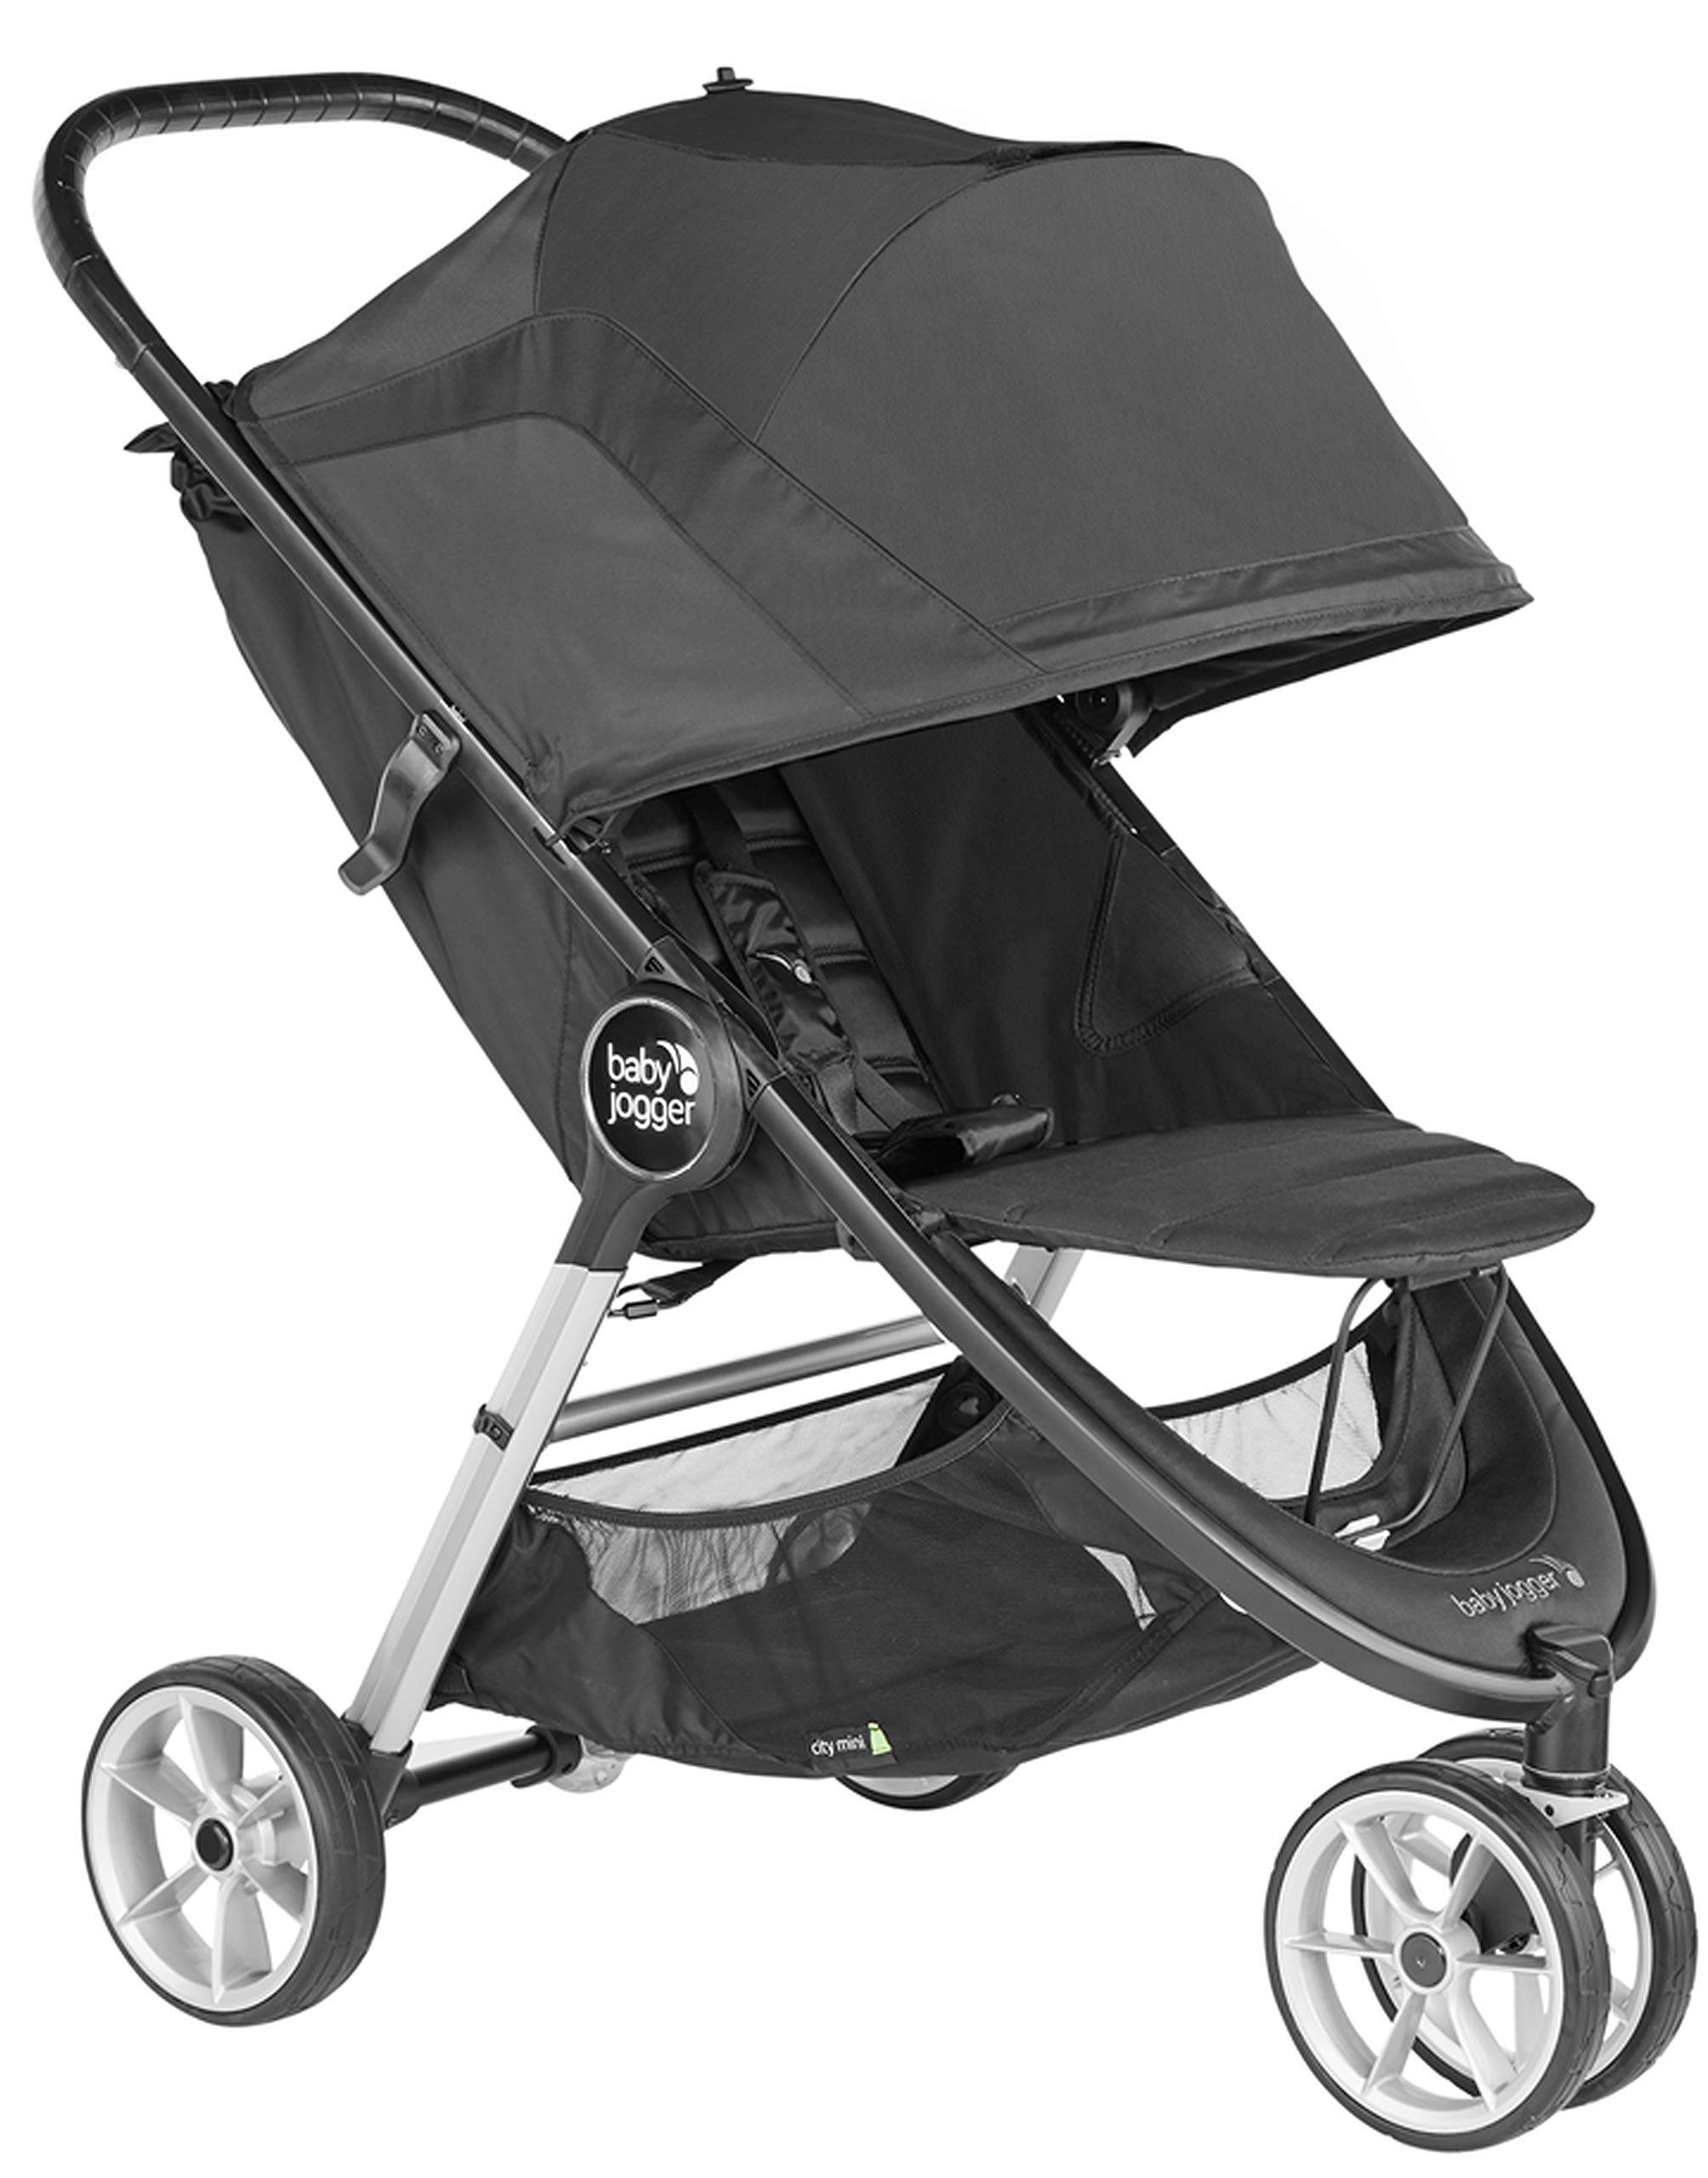 baby jogger City Mini 2 Single Stroller Jet Baby Jogger The baby jogger city mini 2 has an all new lightweight and compact design with the signature one-hand compact fold, with an auto-lock it's remarkably nimble and ready for adventure Lift a strap with one hand and the city mini 2 folds itself: simply and compactly. The auto-lock will lock the fold for transportation or storage The seat, with an adjustable calf support and near-flat recline, holds a child weighing up to 22kg and includes a 5-point stroller harness to keep them comfortable and safely secured 3